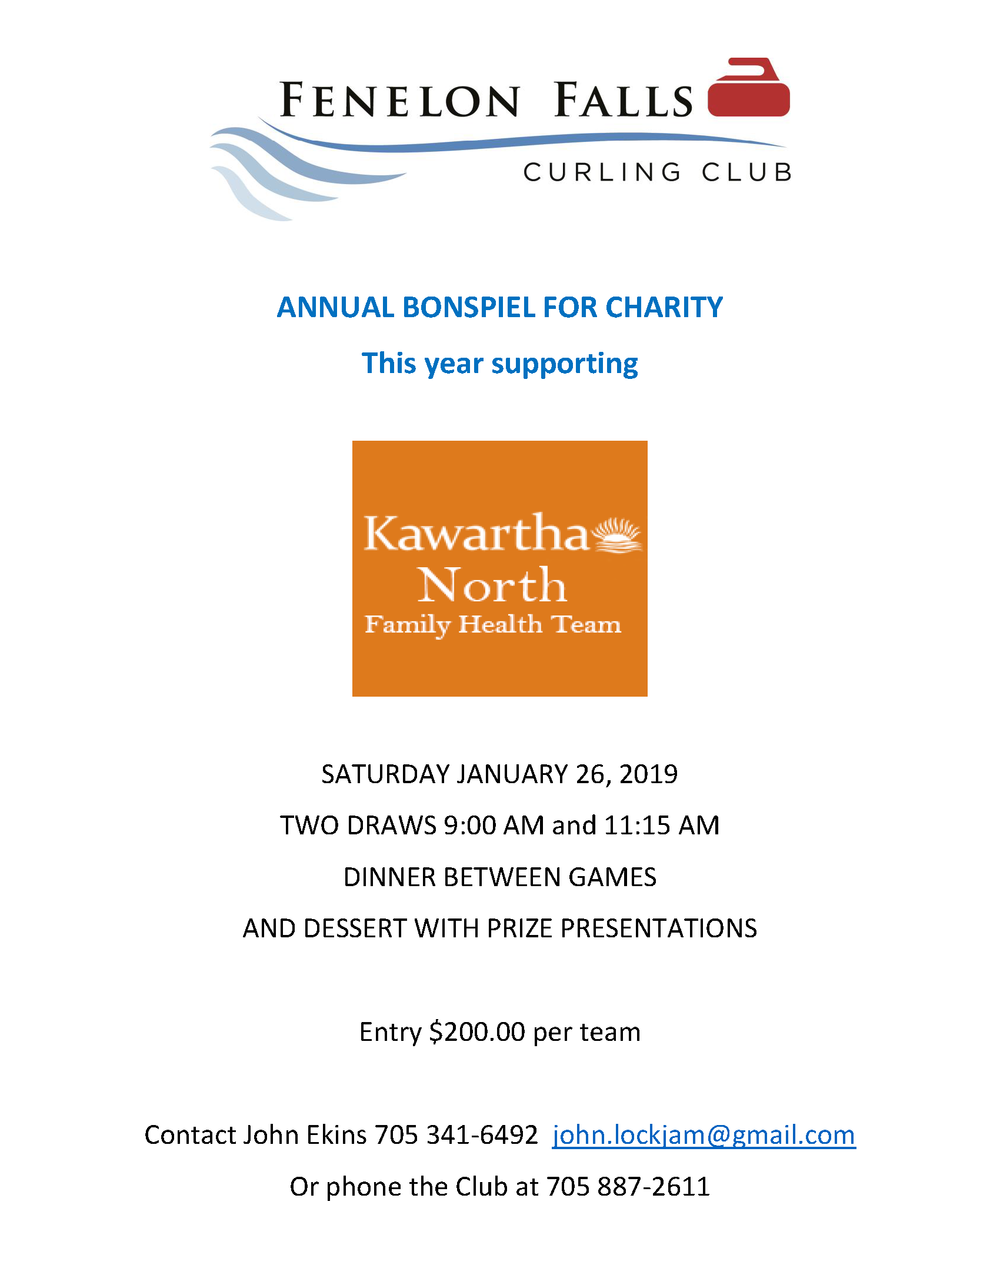 ANNUAL-BONSPIEL-FOR-CHARITY.png